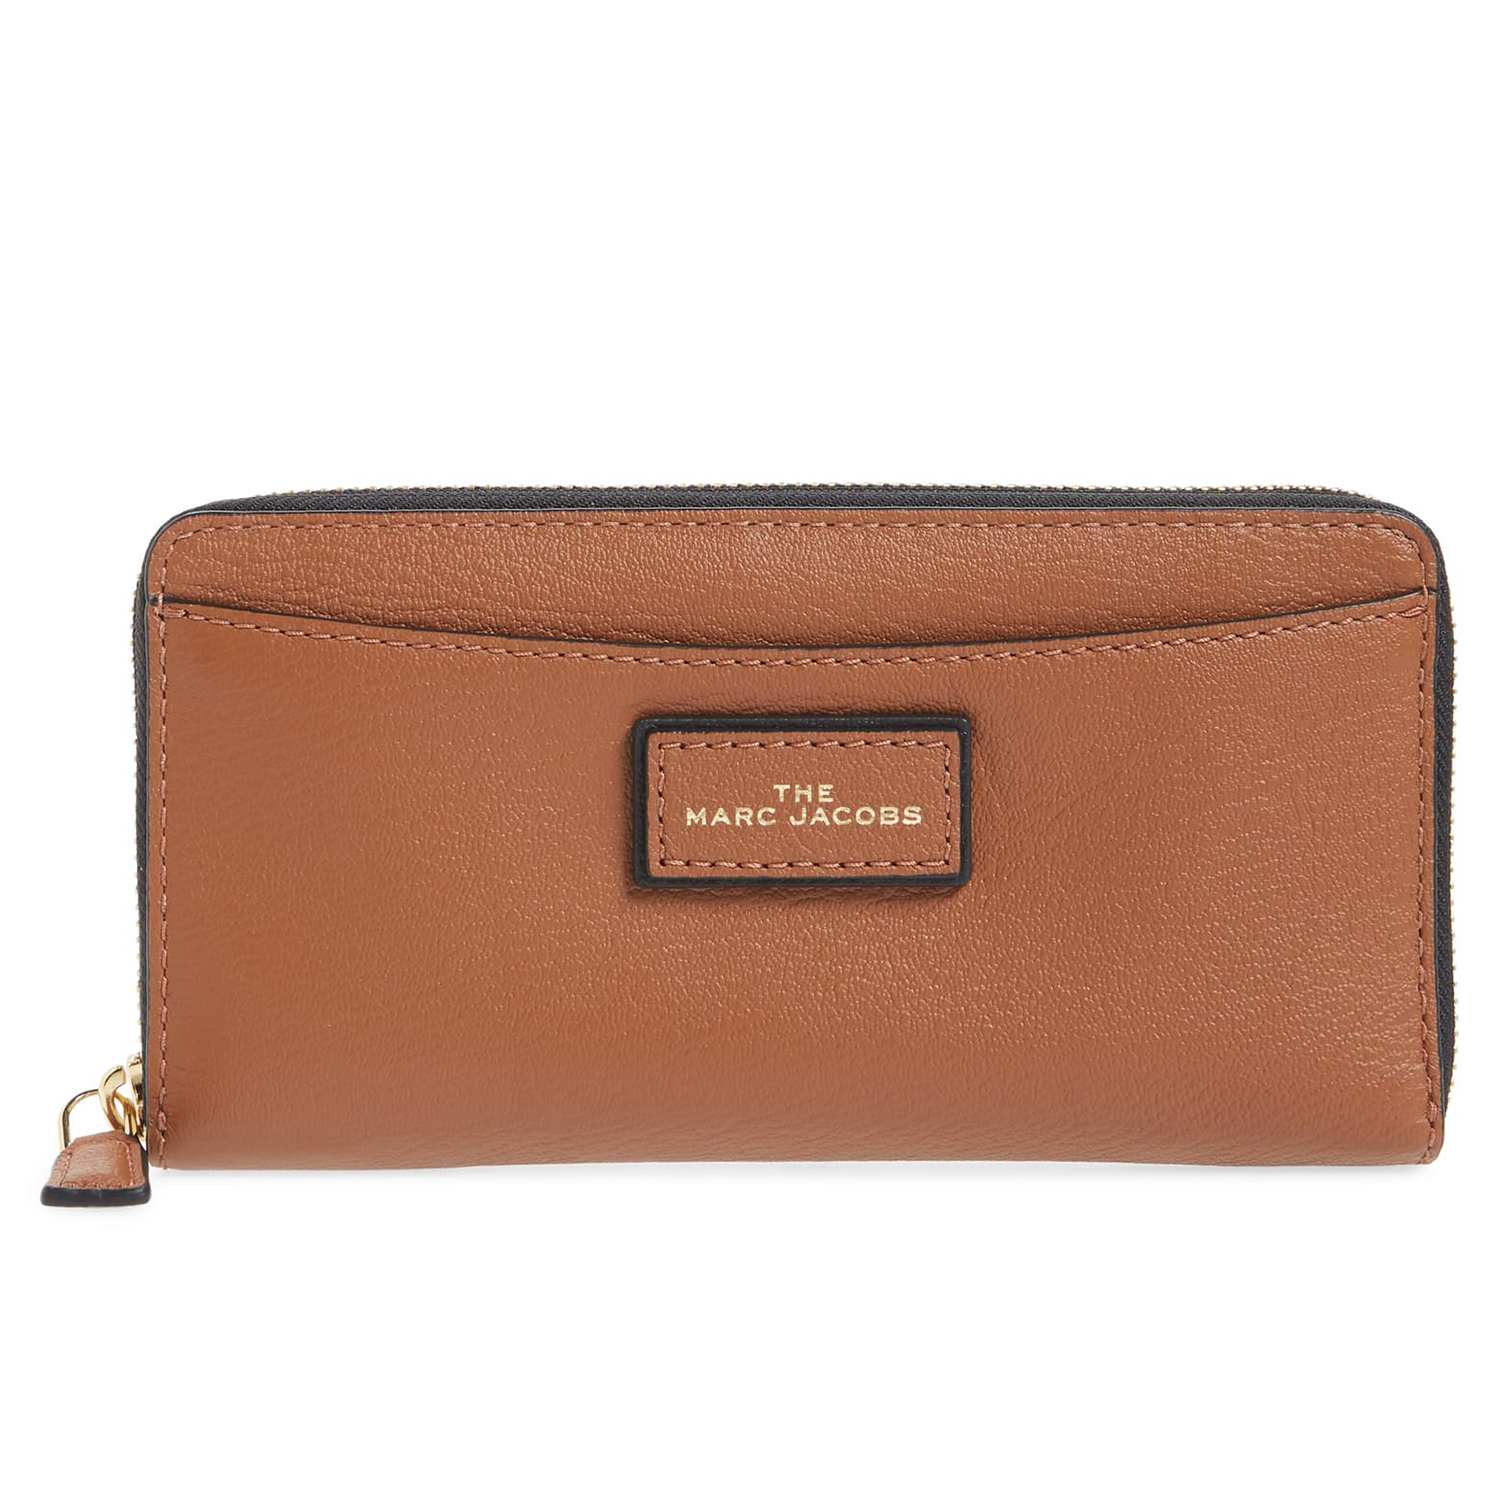 The Marc Jacobs The Vertical Zippy Leather Wallet